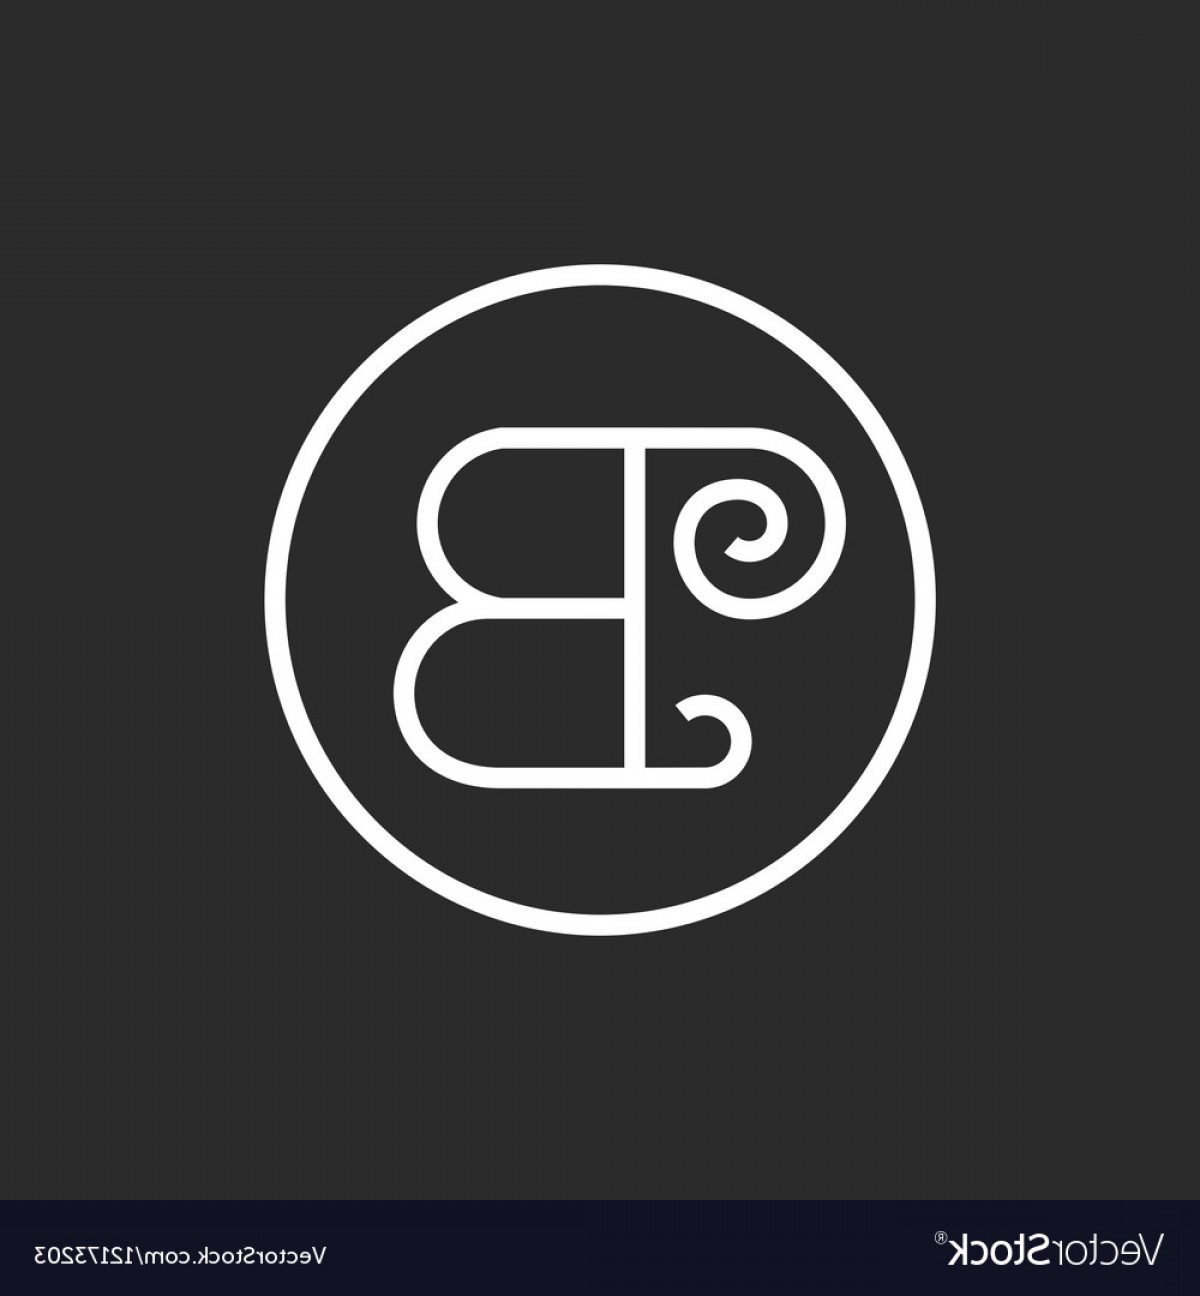 BBB Logo In Vector Form: Sign Vintage Of The Letter B In A Straight Line Vector